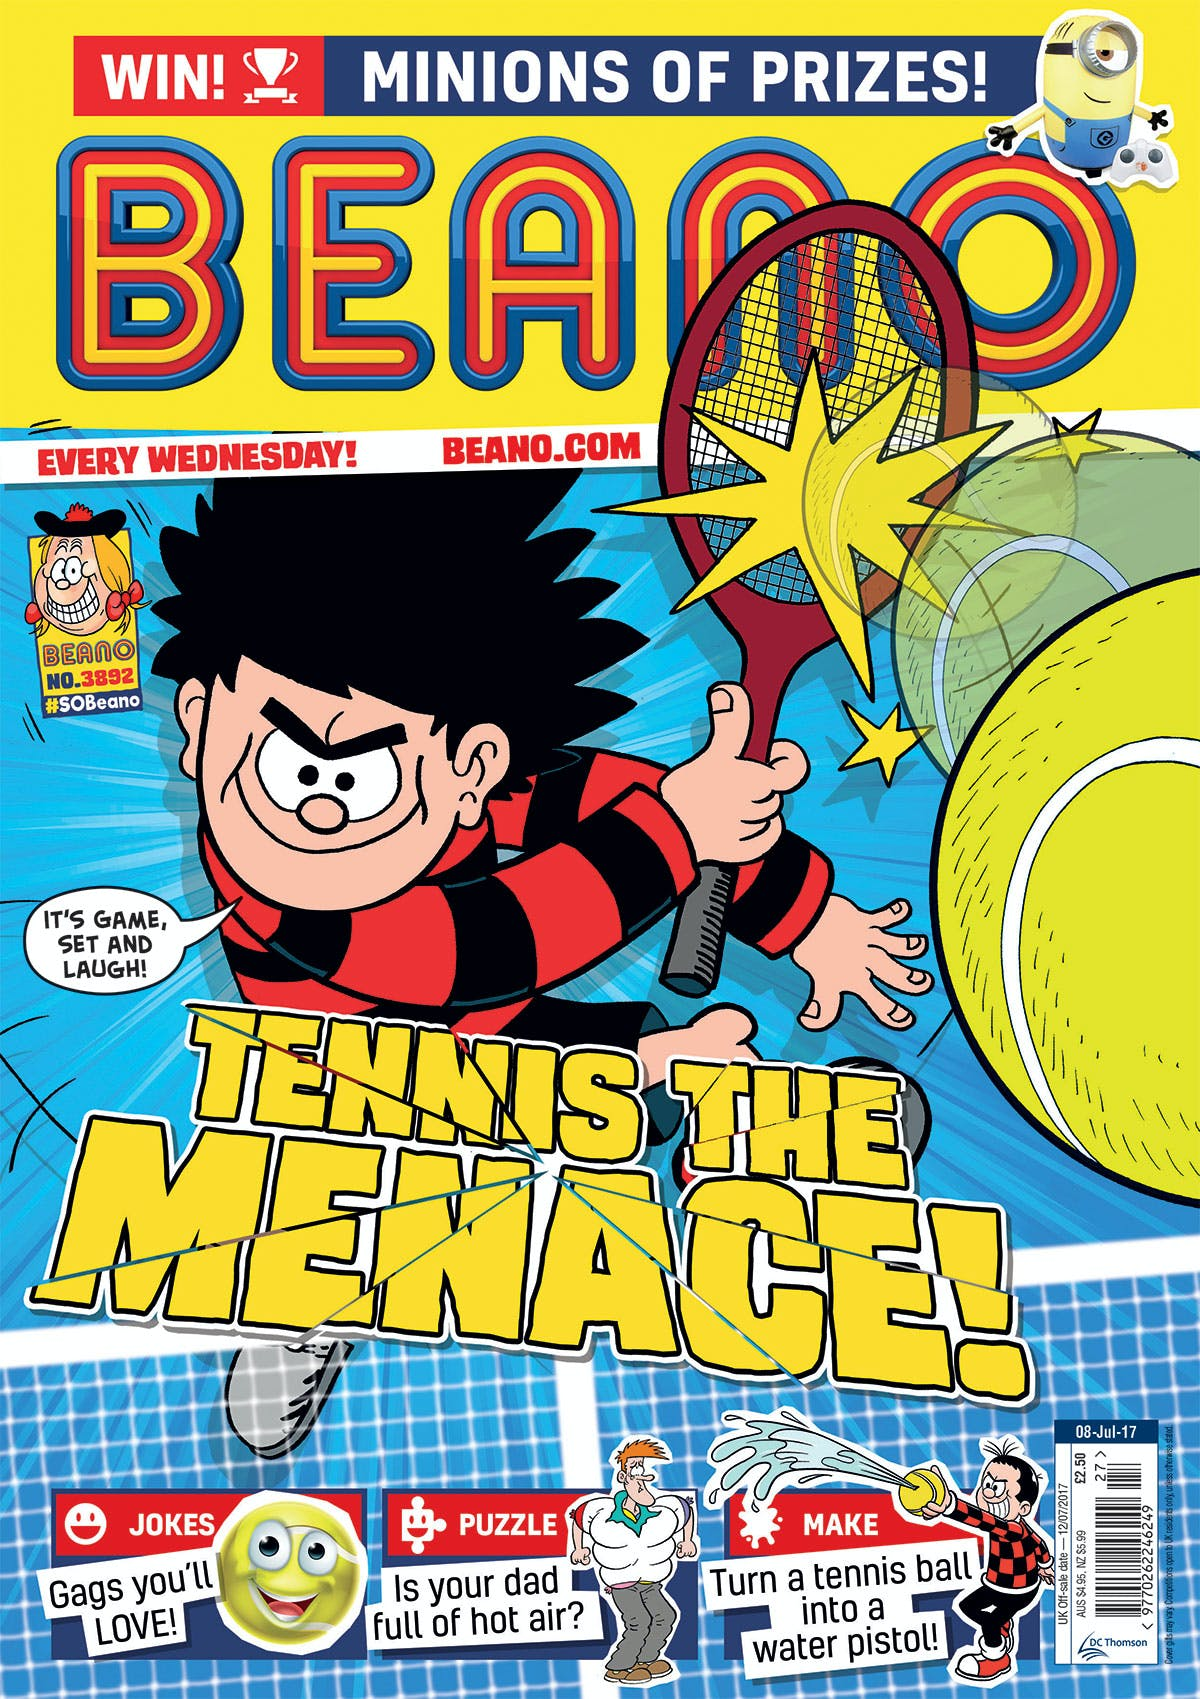 Beano No. 3895, July 8th 2017 Tennis the Menace